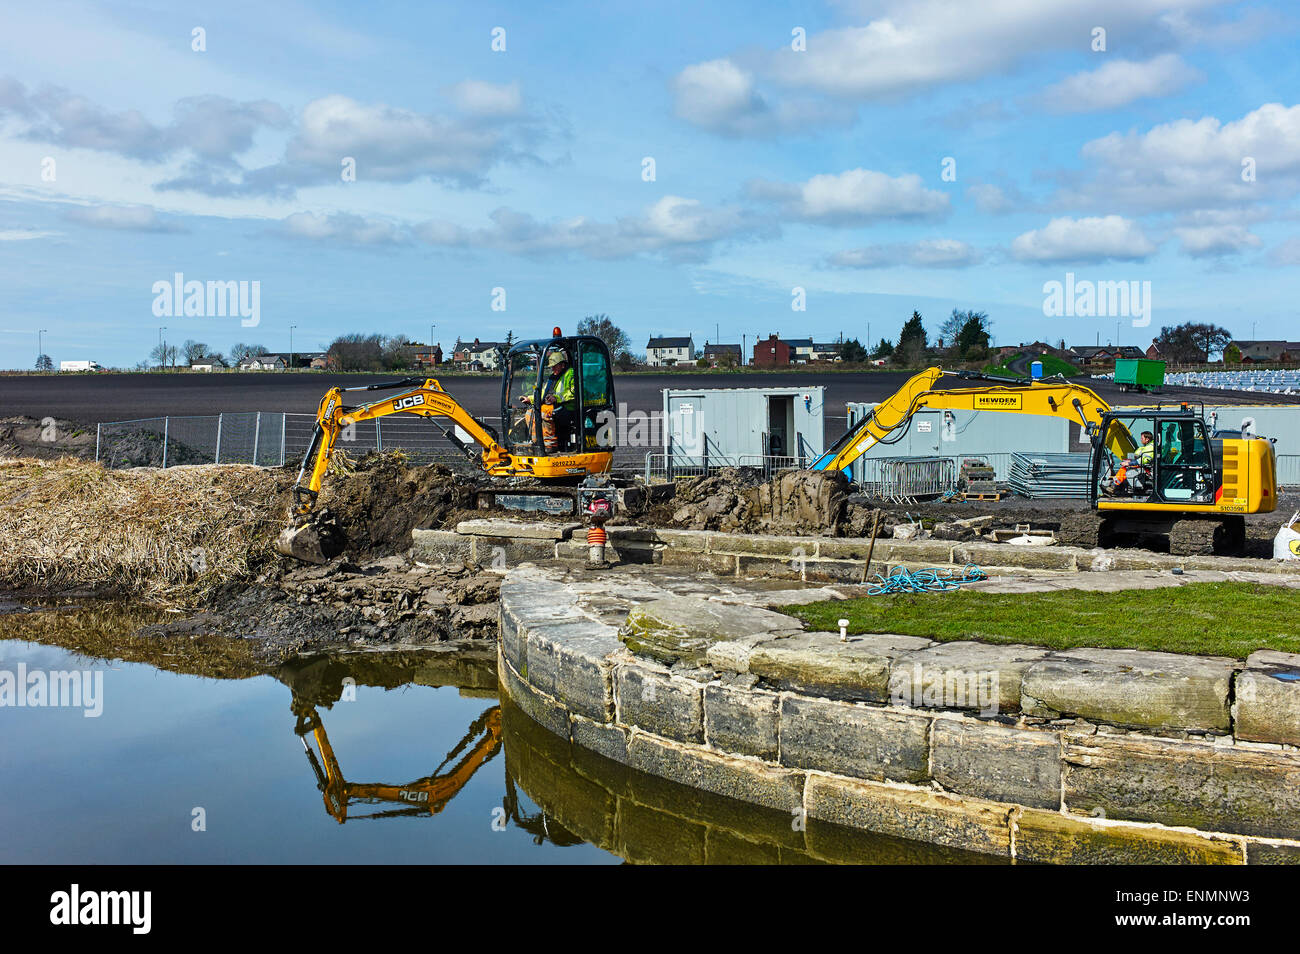 Lock 6 being repaired on Rufford link - Stock Image